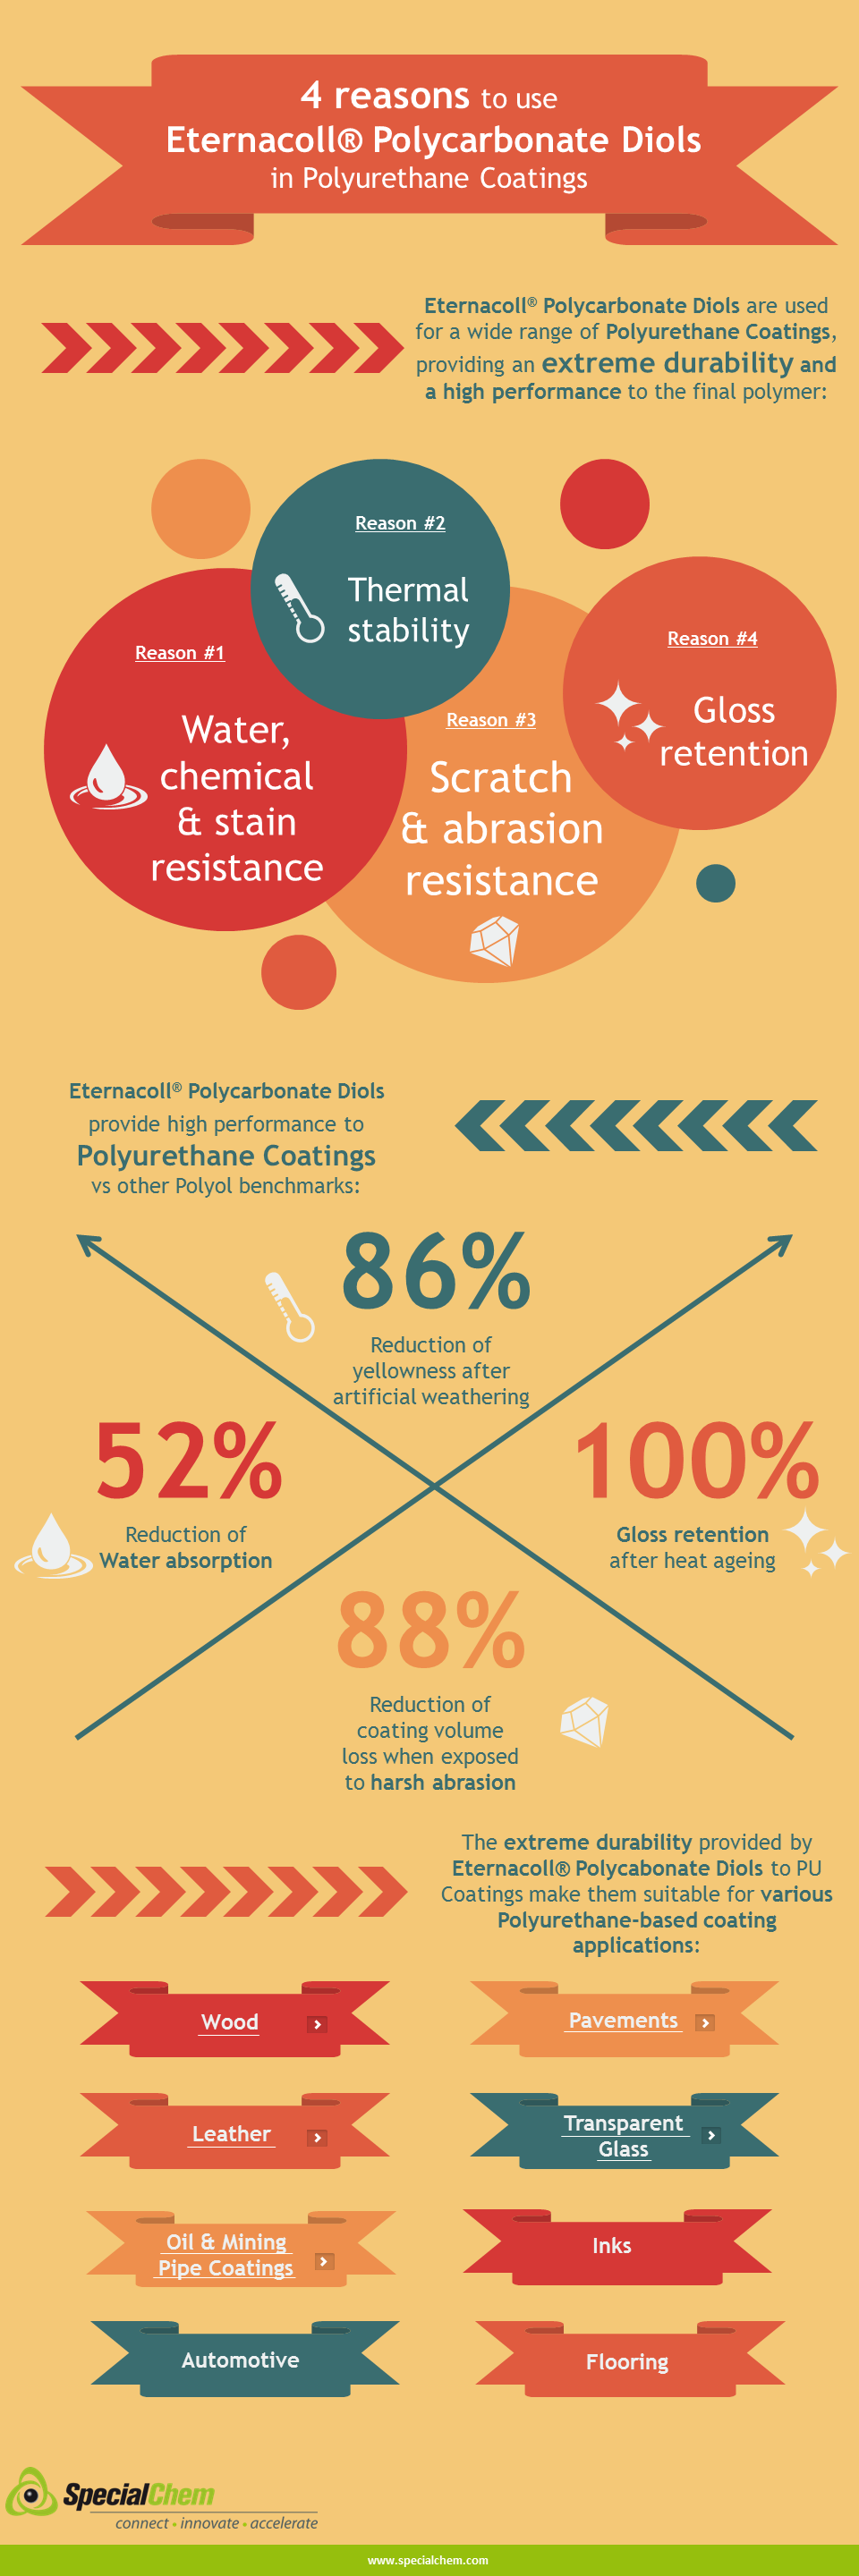 4 reasons to use Polycarbonate Diols in PU Coatings